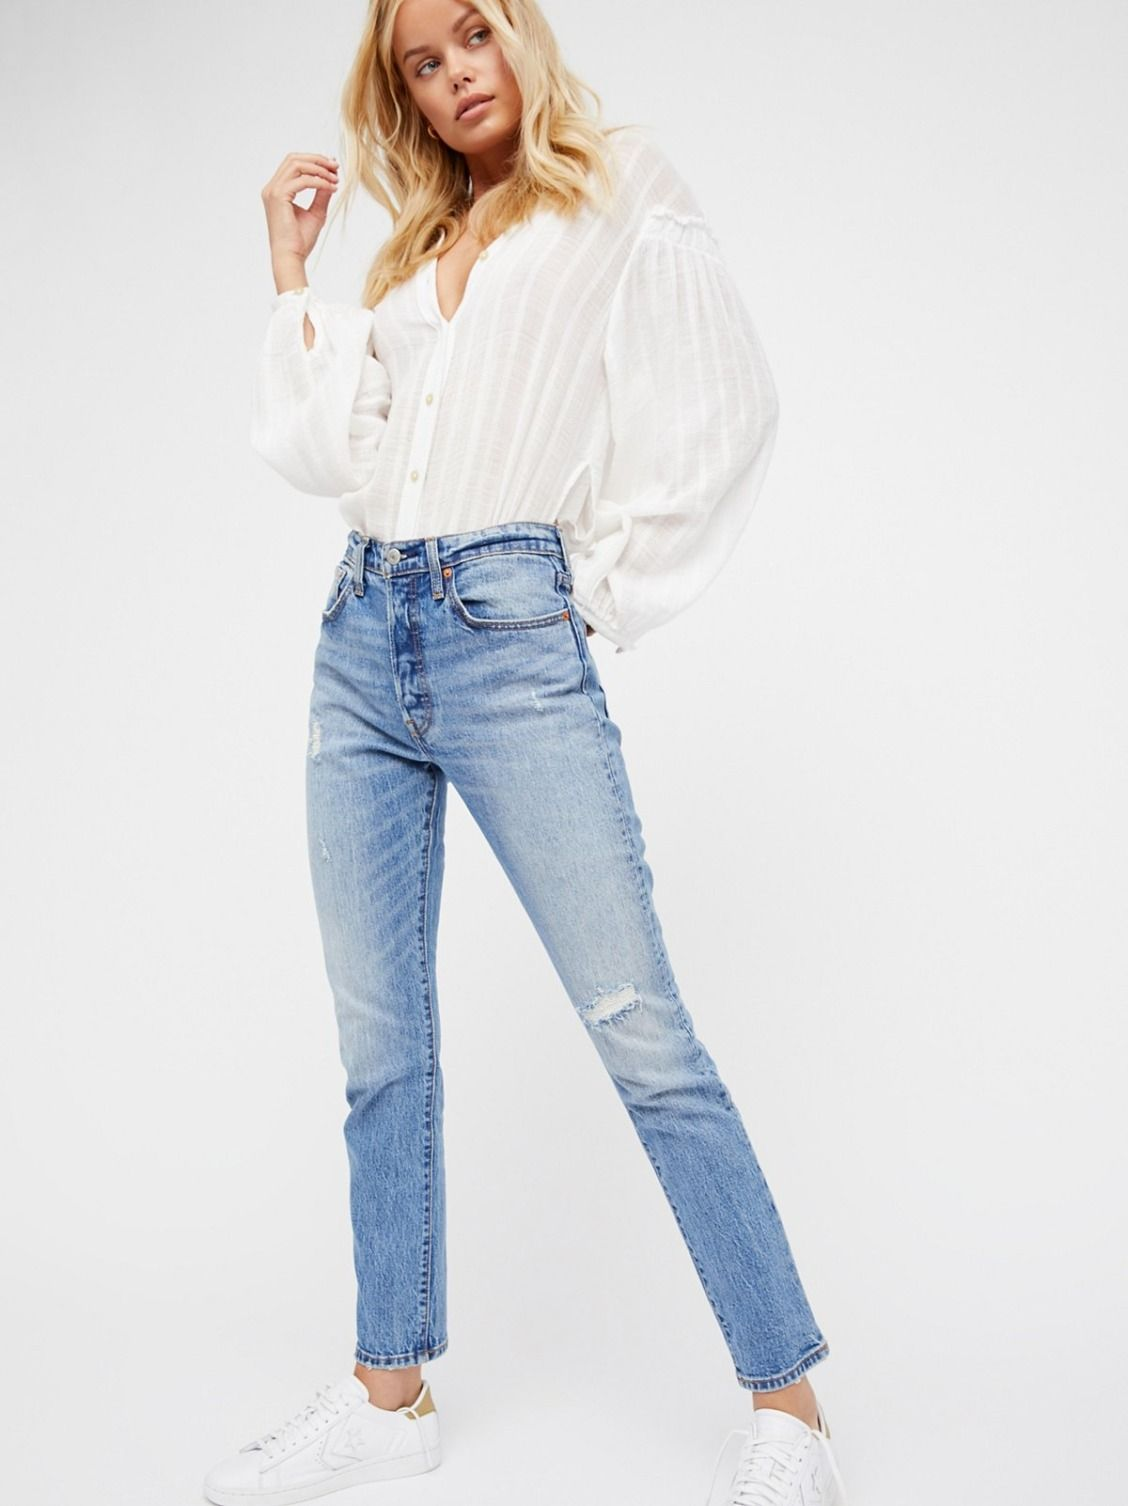 501 Skinny Jeans   The iconic Levi s 501 has been reimagined with a slimmer skinny  leg and a high-rise.   Fits straight through the hip and thigh. 0019500270